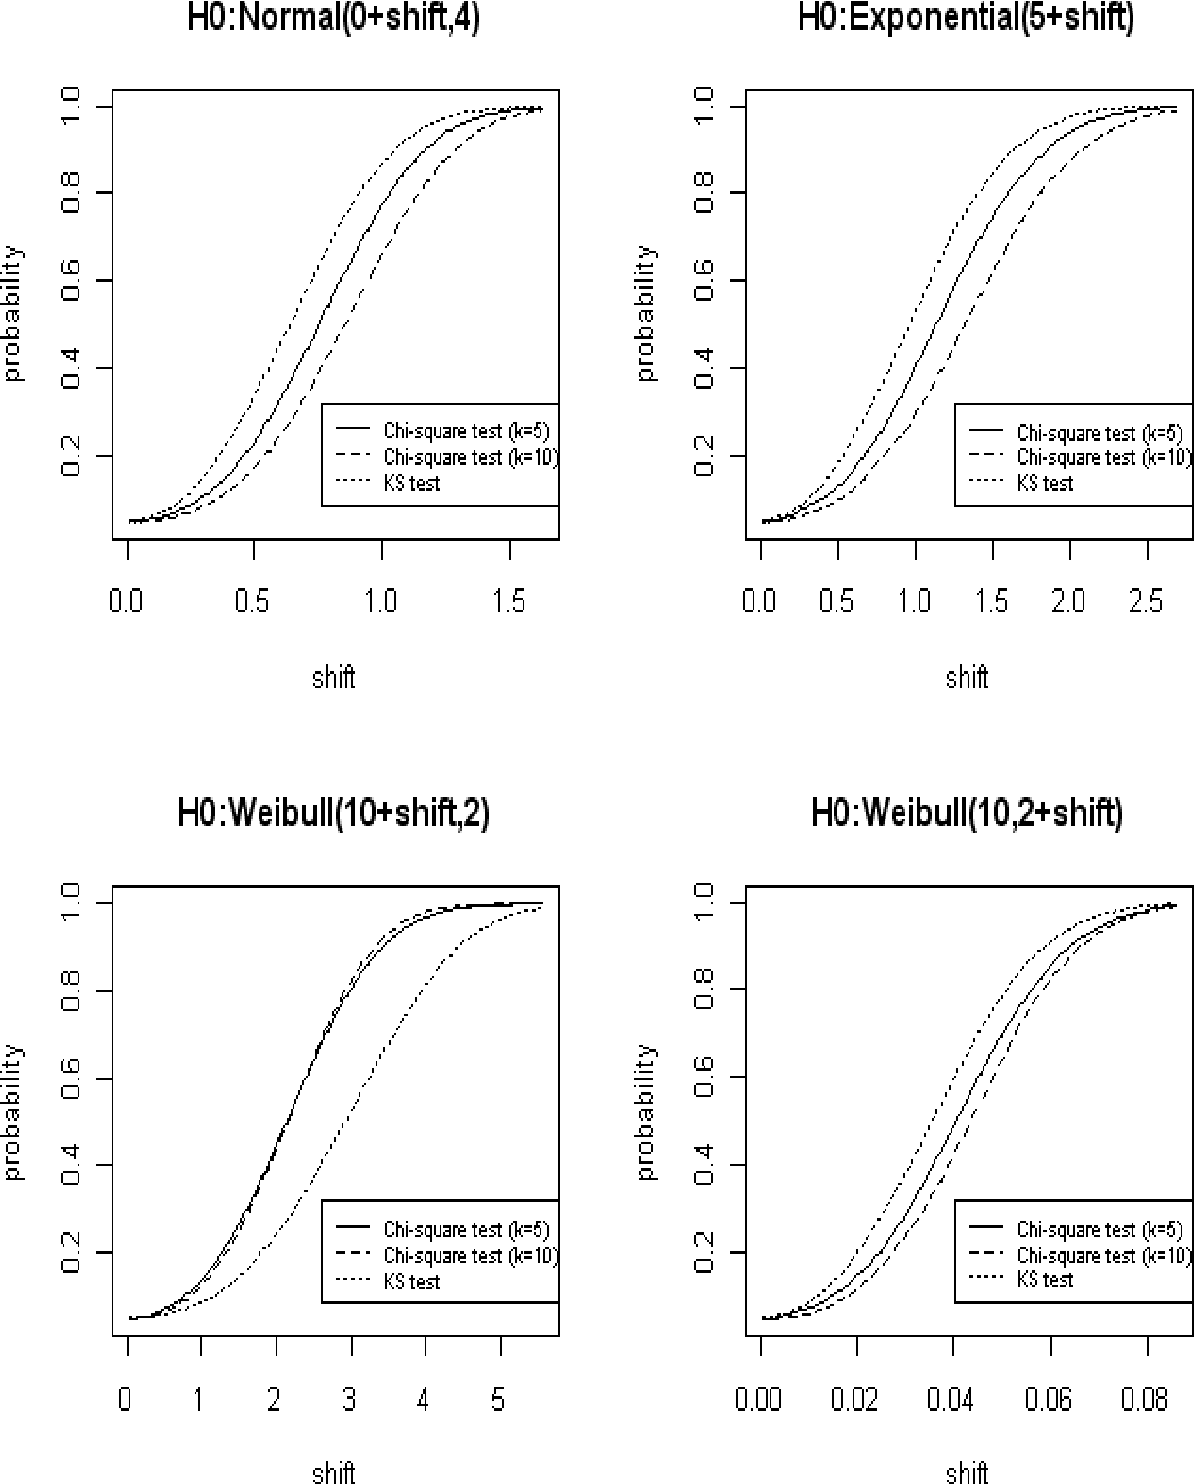 Fig. 1. Power for Both Chi-square (k=5,10) and KS Tests at =0.05 and n=200. Data are Generated from the Same Distribution as H0 but Without the Shifted value under 10,000 Simulations.